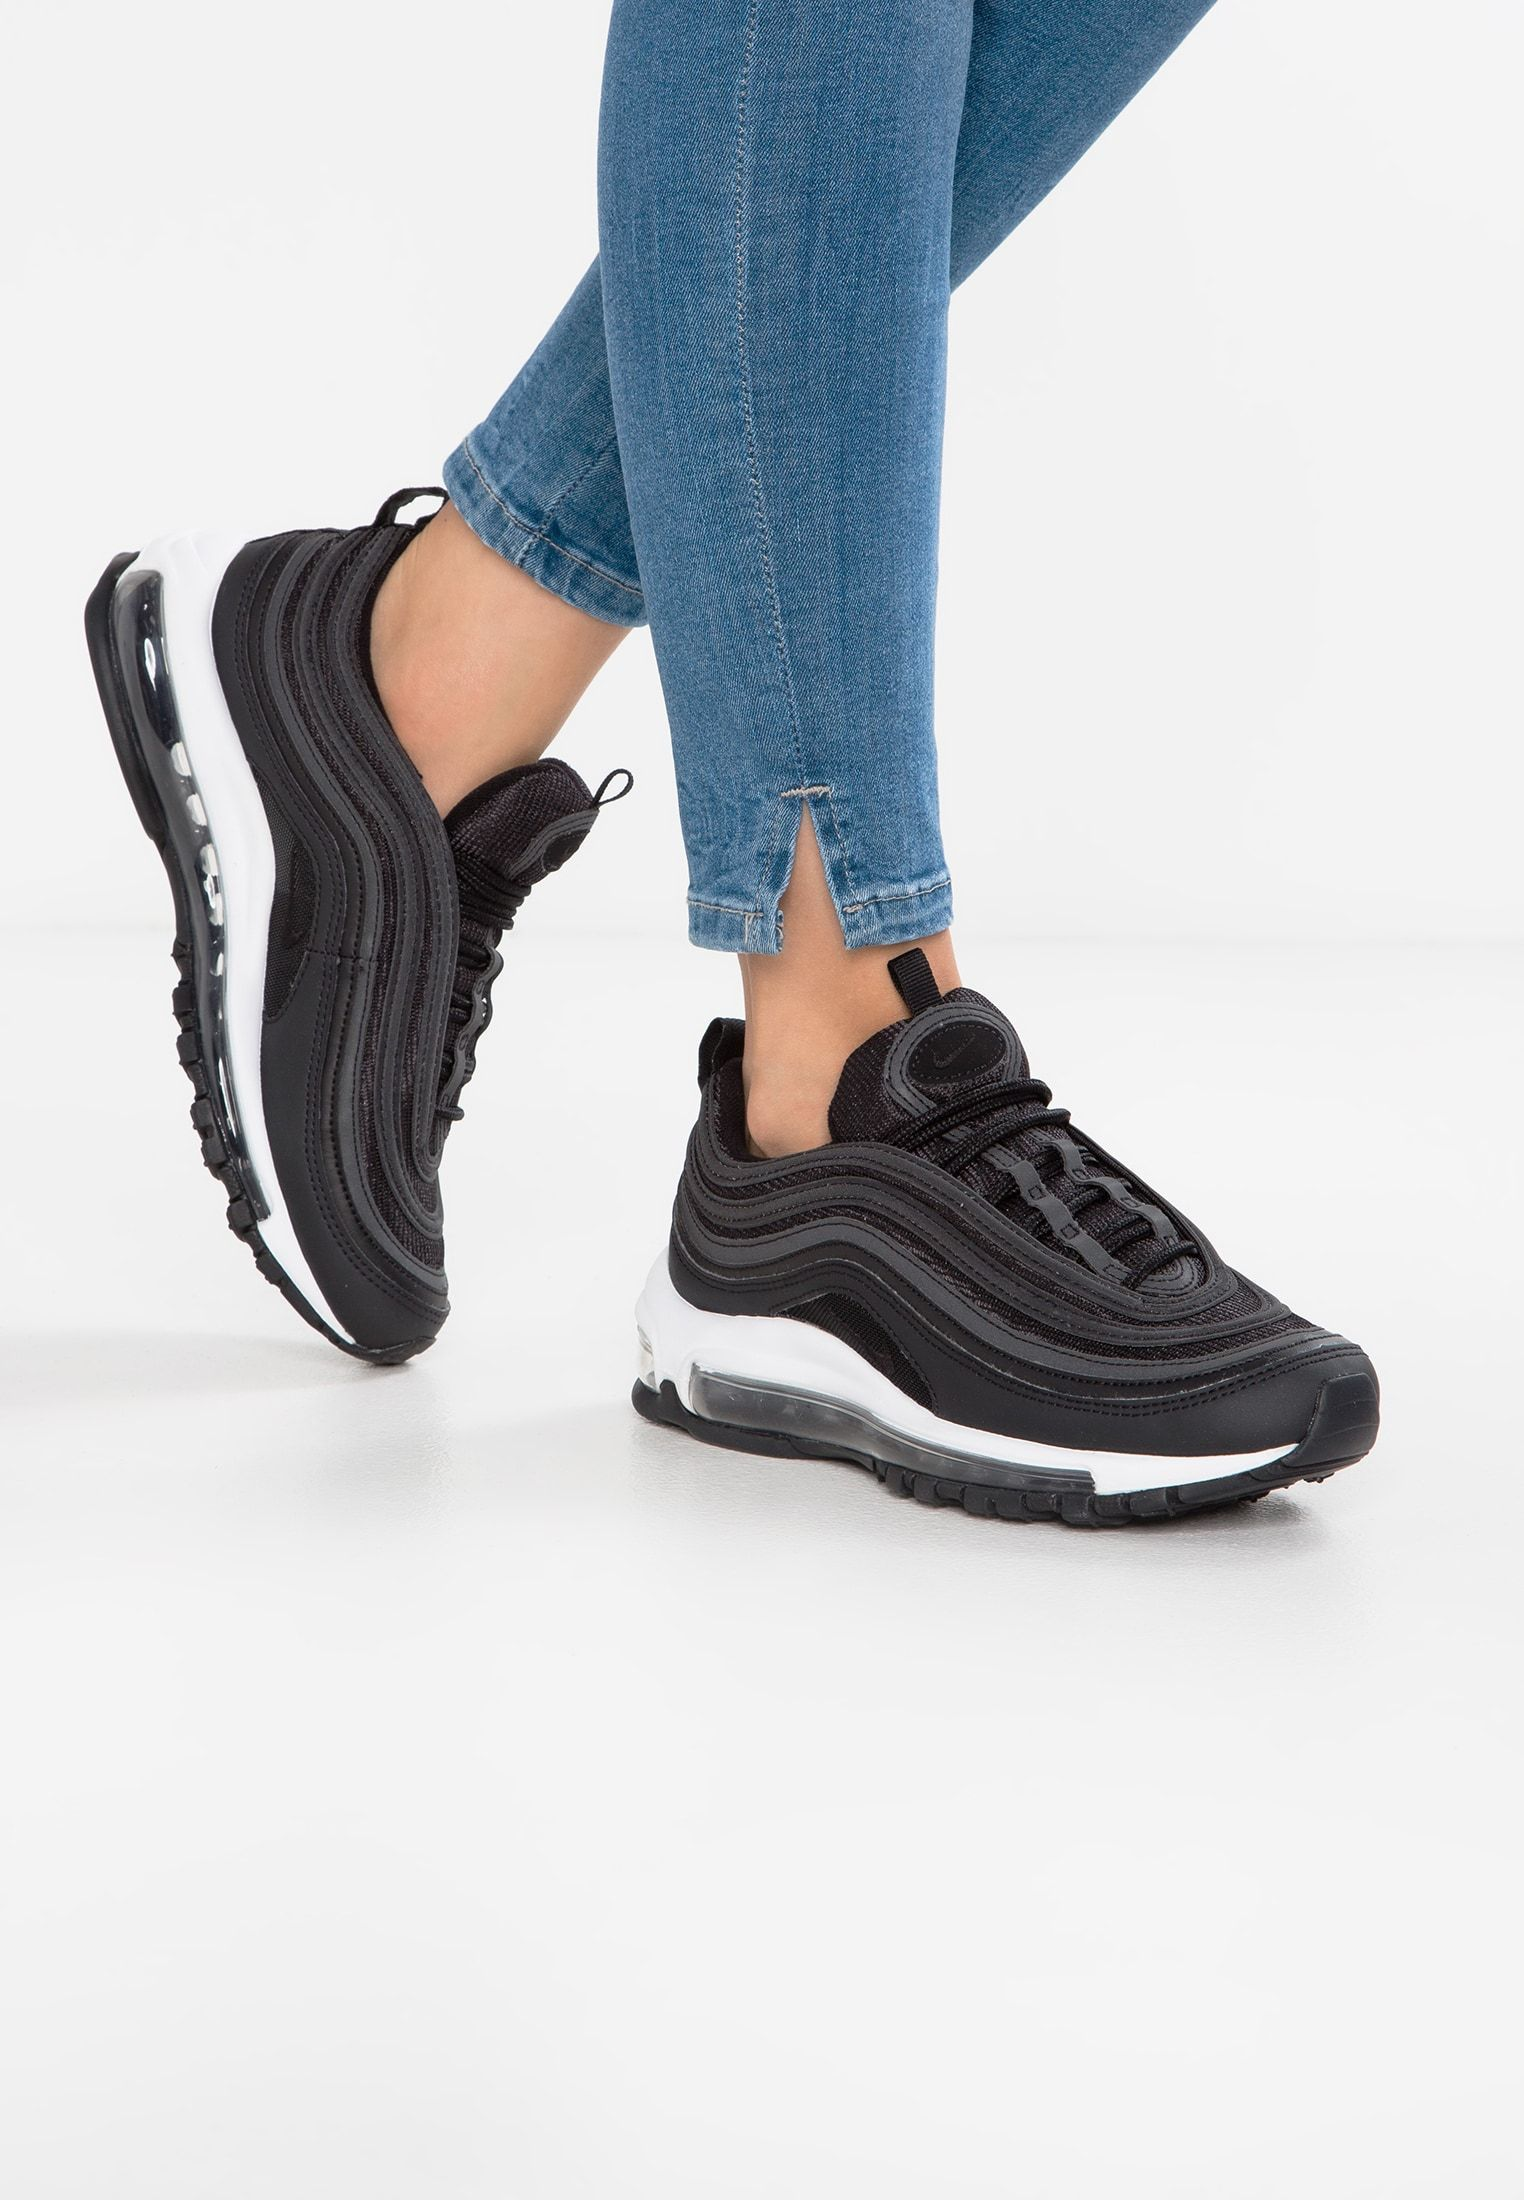 air max 97 sneakers nere